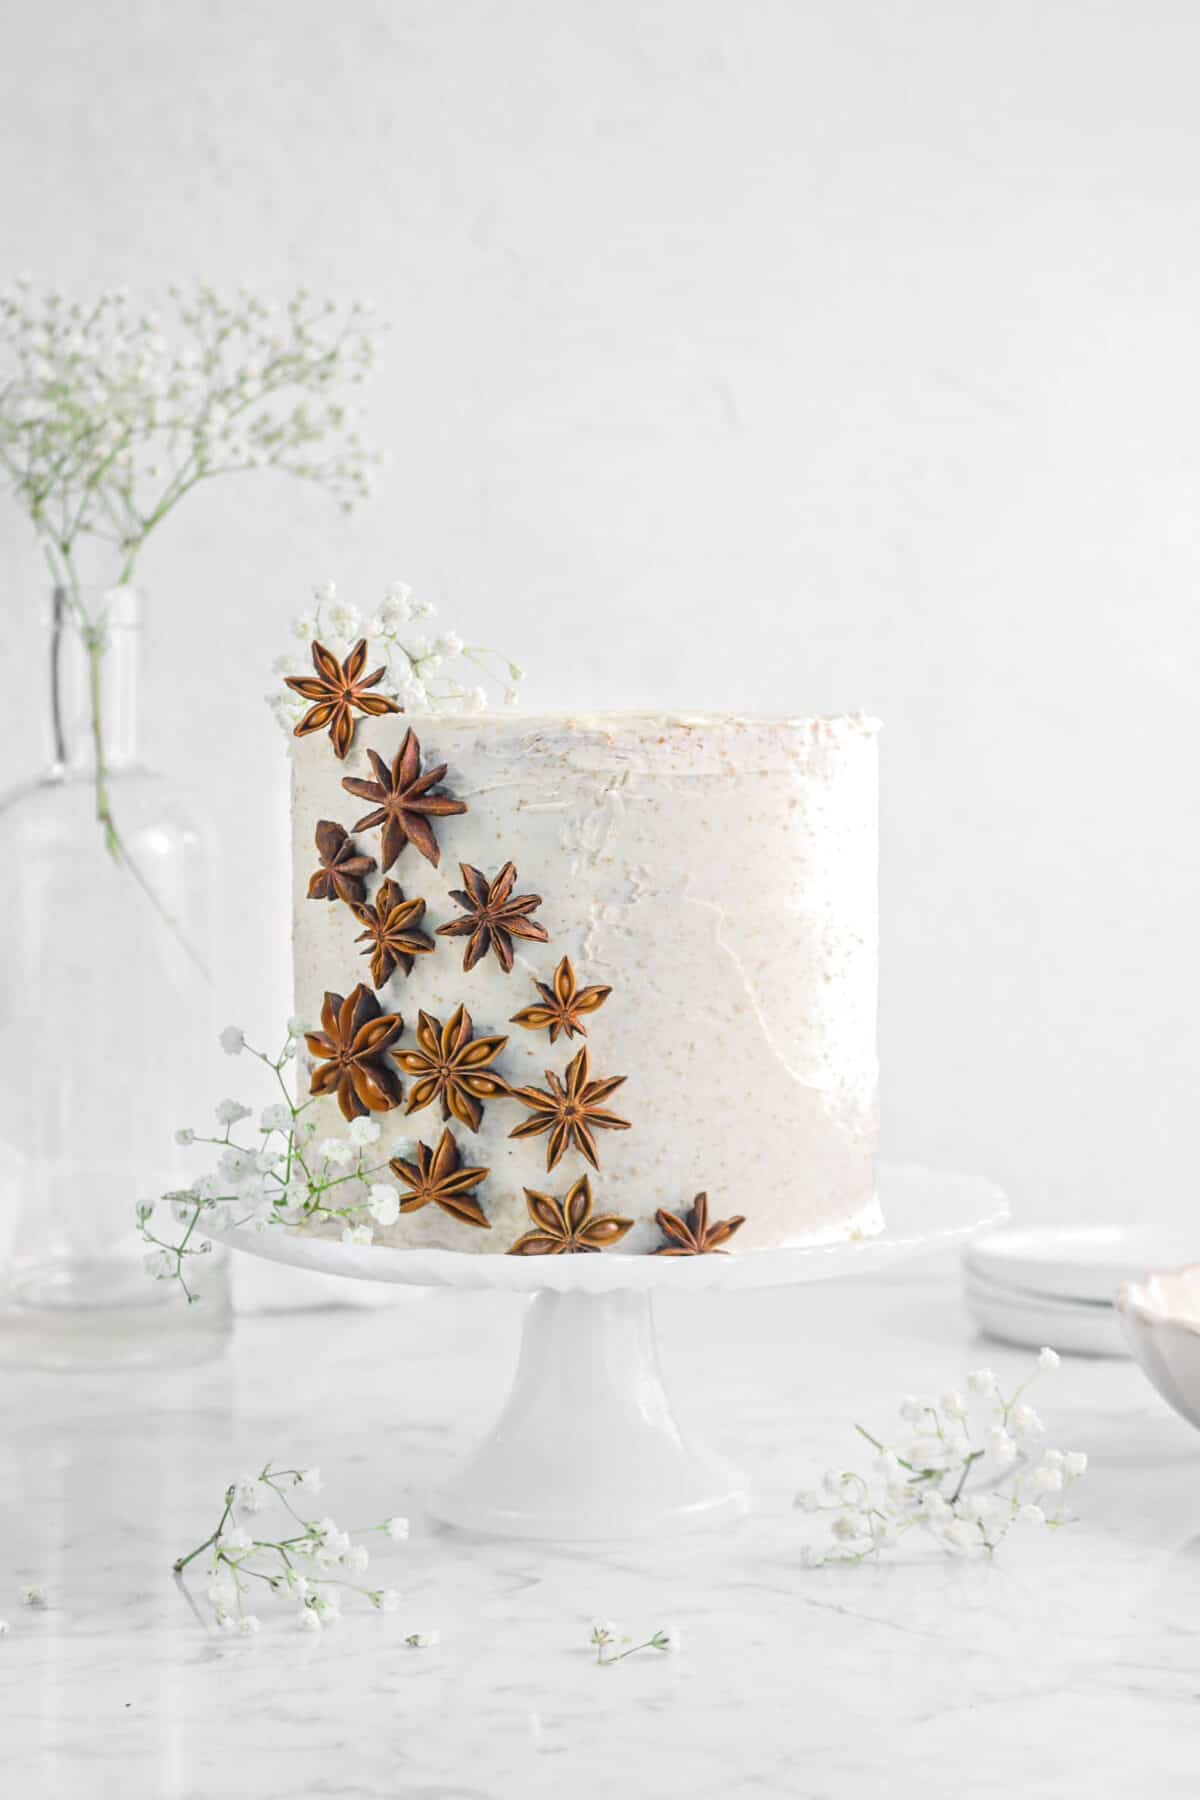 spice cake on cake stand with star anise and flowers